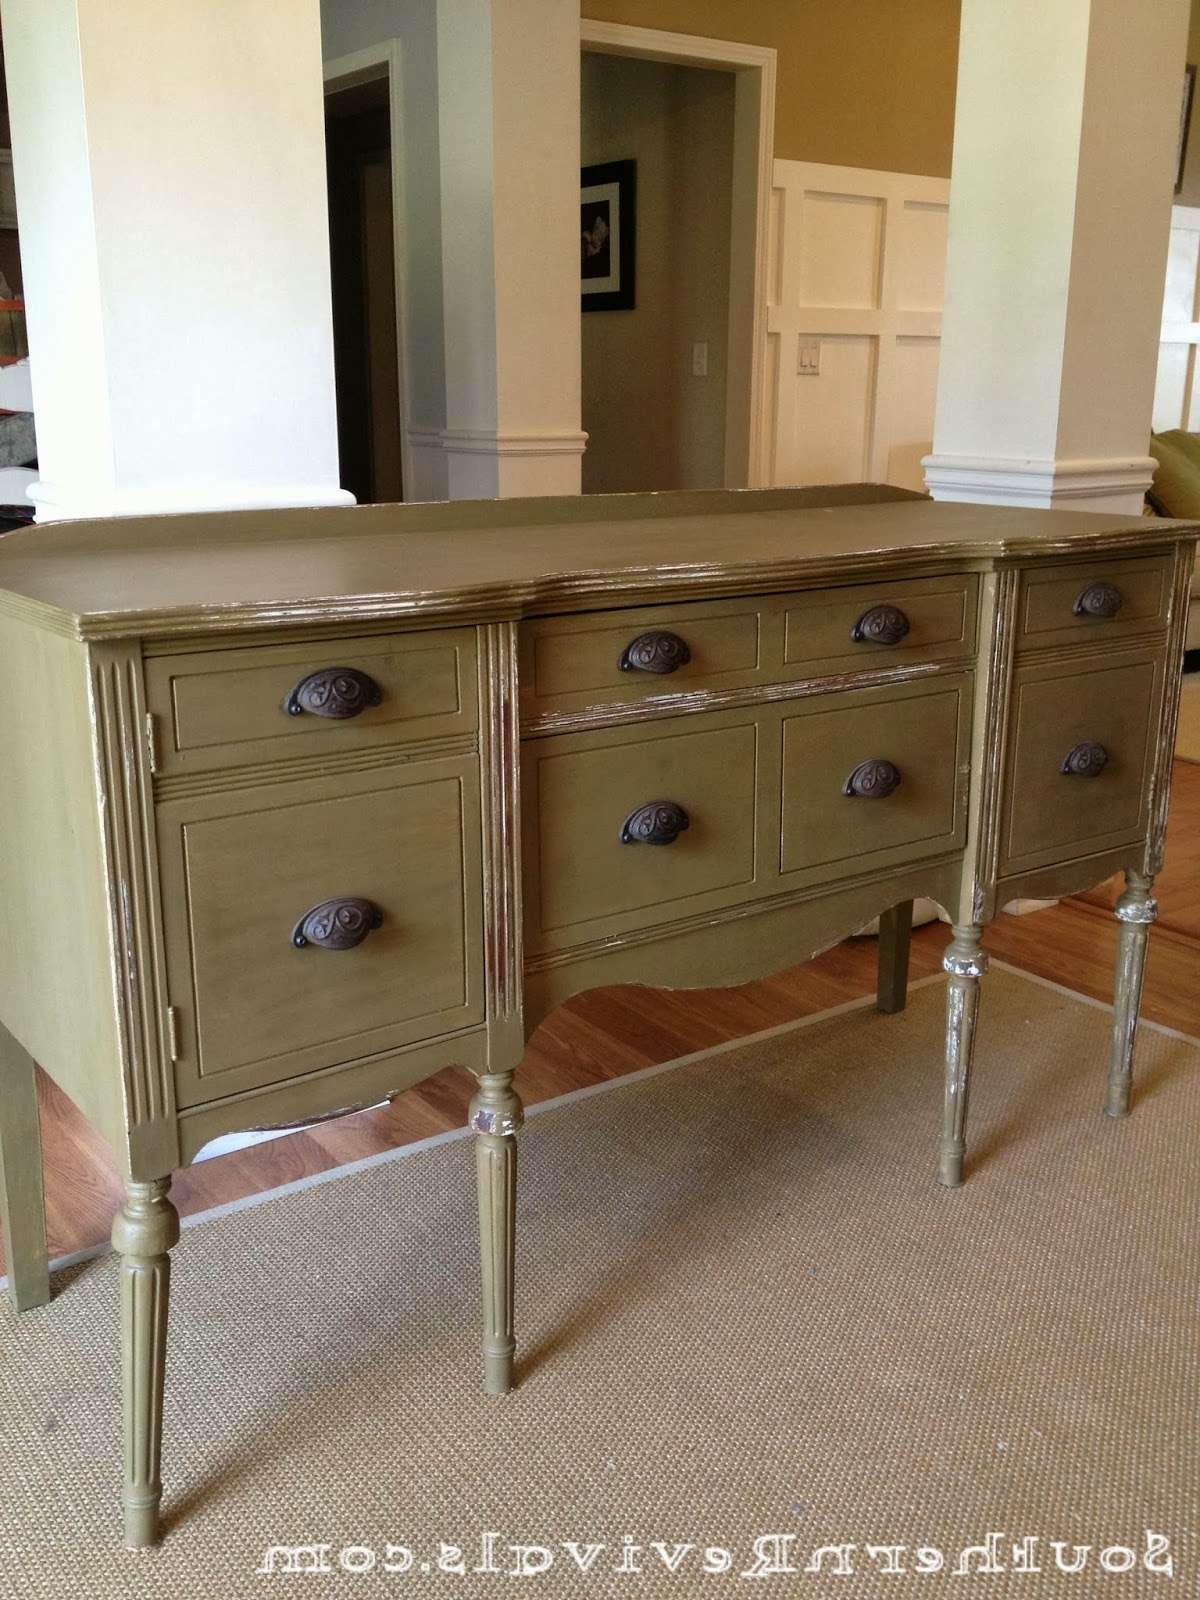 Updating A Vintage Sideboard Buffet With A Pop Of Color – Southern With Vintage Sideboards And Buffets (View 18 of 20)